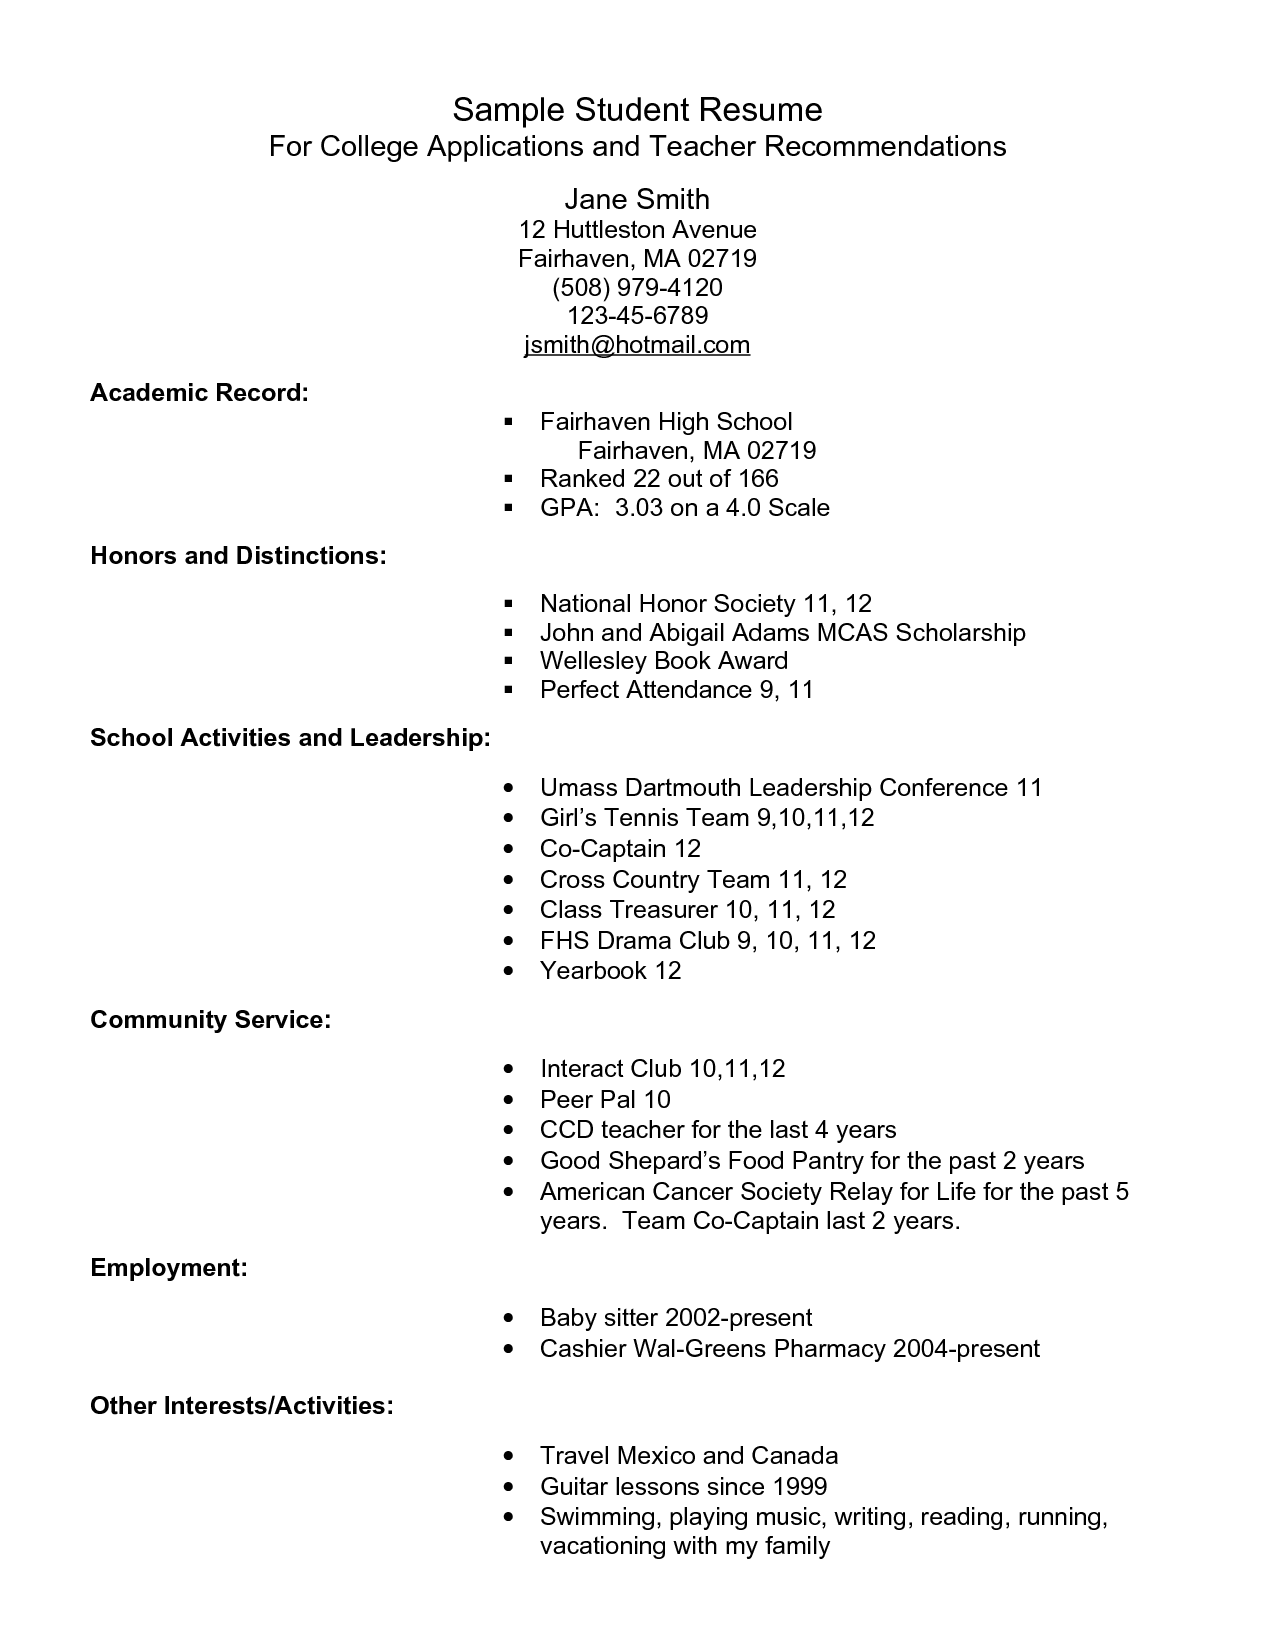 example resume for high school students for college applications  also example resume for high school students for college applications samplestudent resume  pdf by smapdi